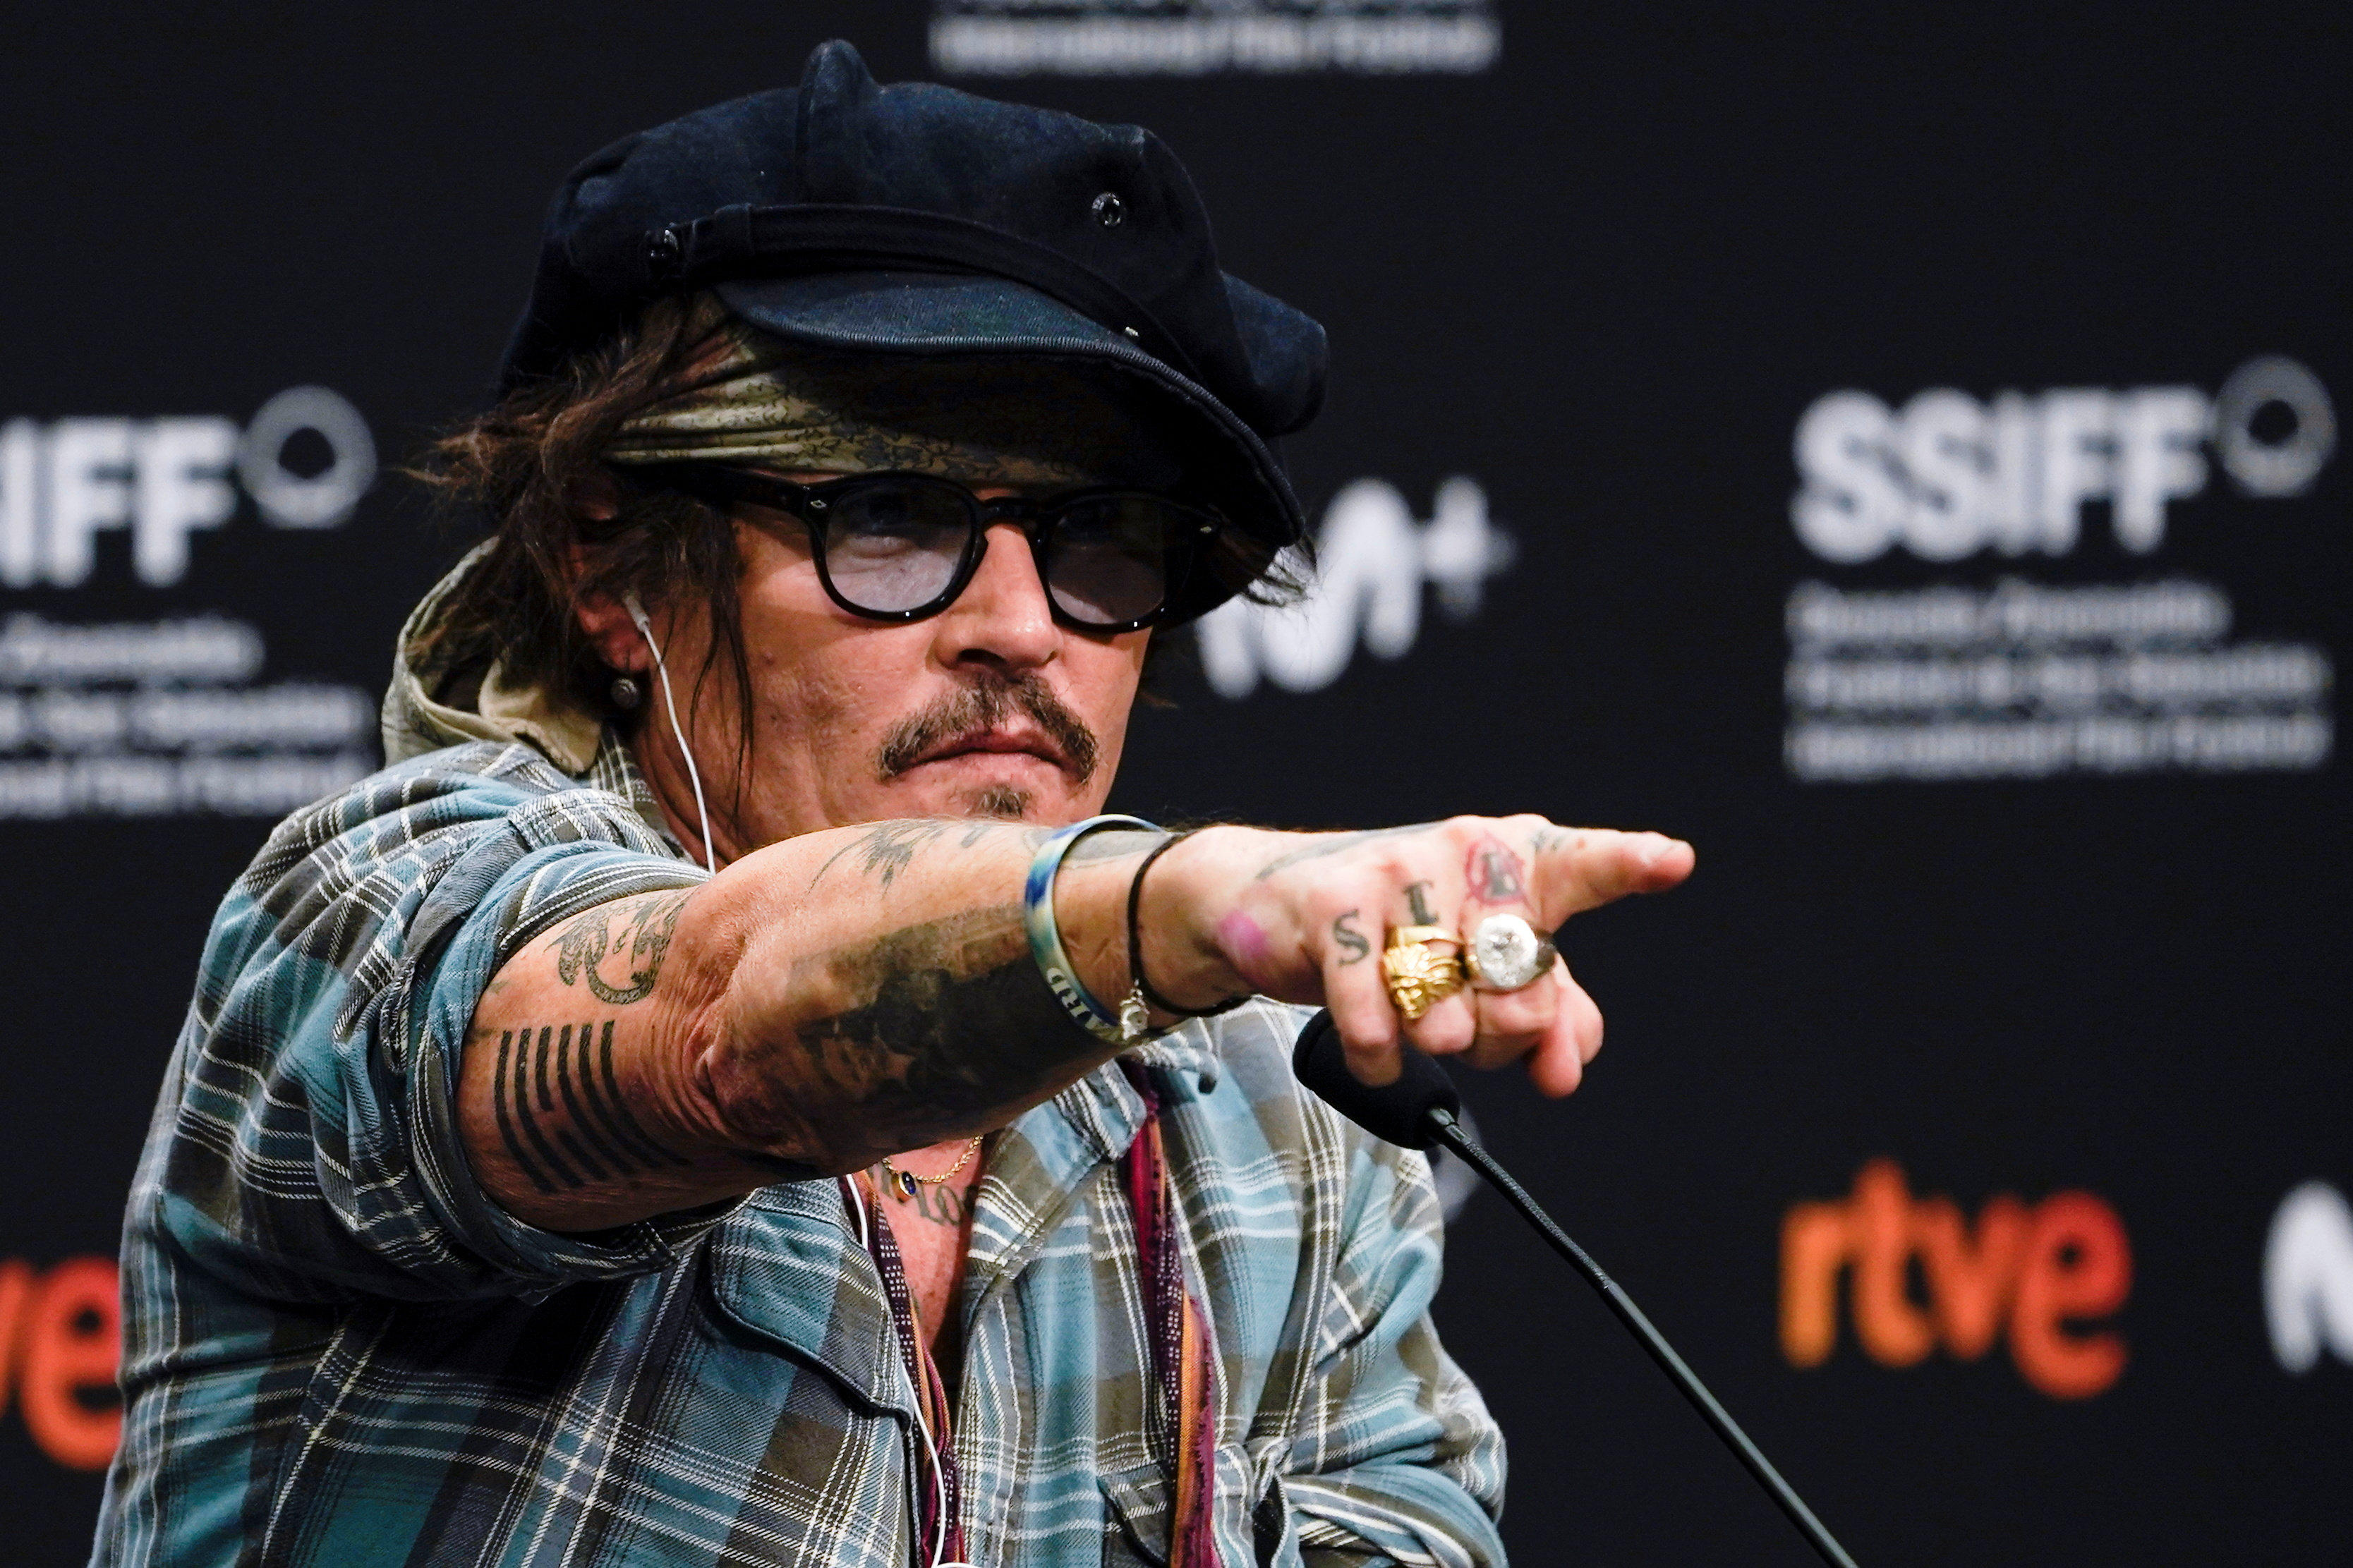 Actor Johnny Depp attends a news conference ahead of receiving the Donostia Award at the 69th San Sebastian International Film Festival, in San Sebastian, Spain, September 22, 2021. REUTERS/Vincent West